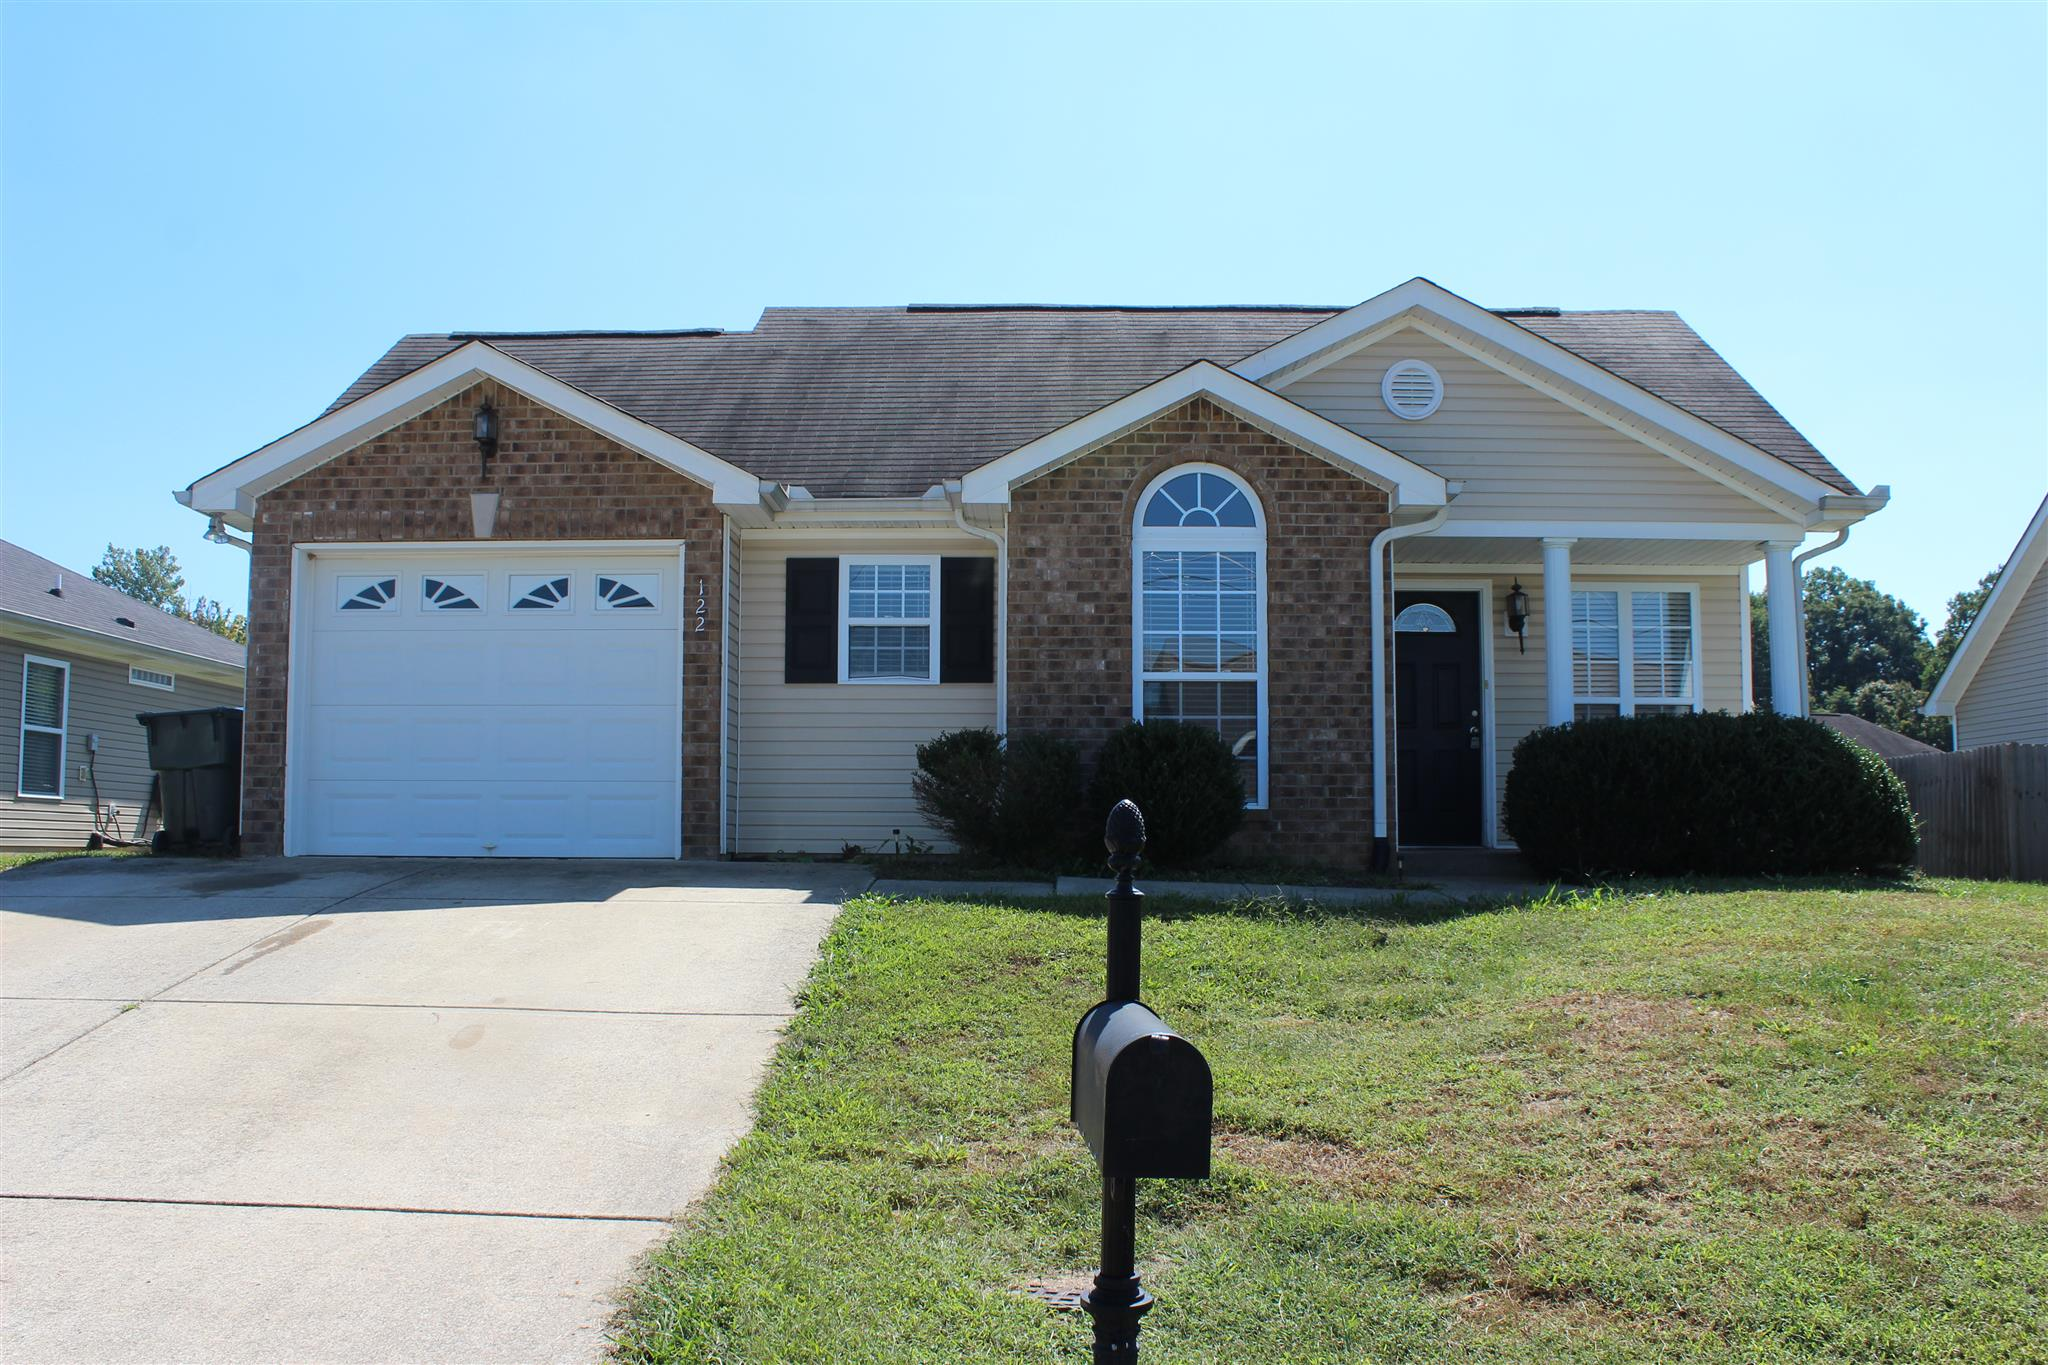 122 Star Pl, White House, TN 37188